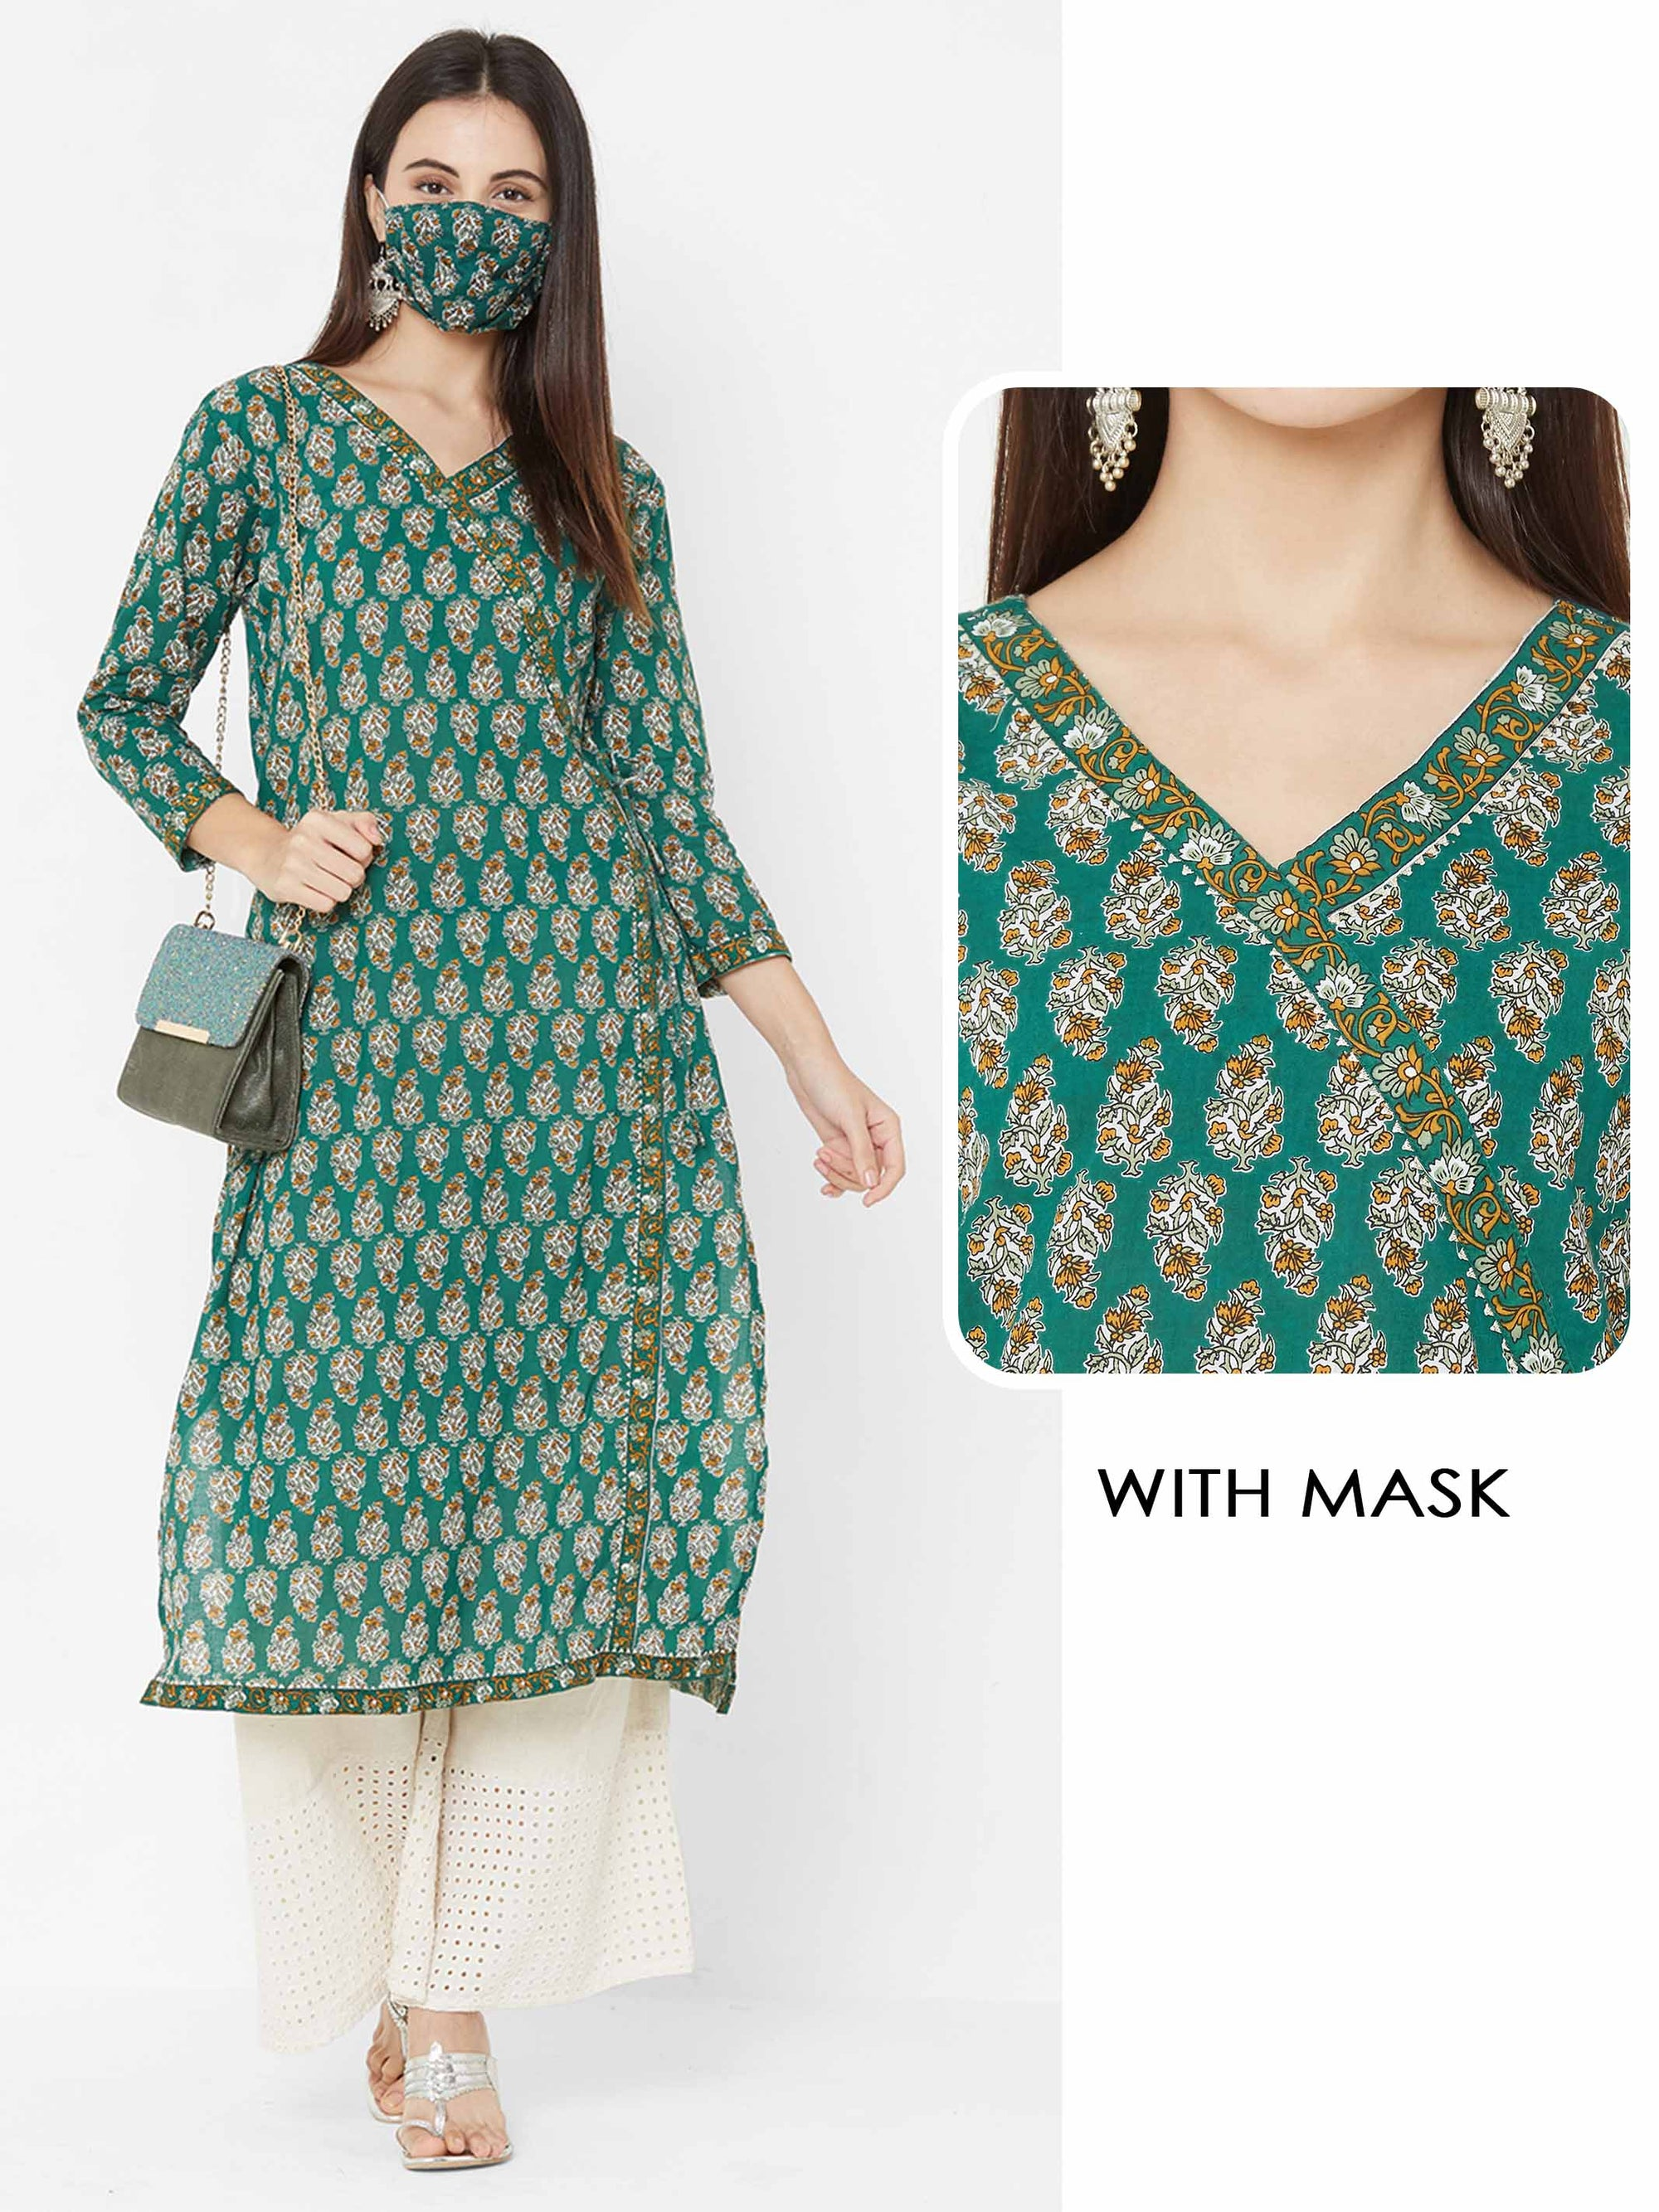 Block Printed Floral Dense Printed Angarakha Kurta with printed 2 Ply Mask – Green